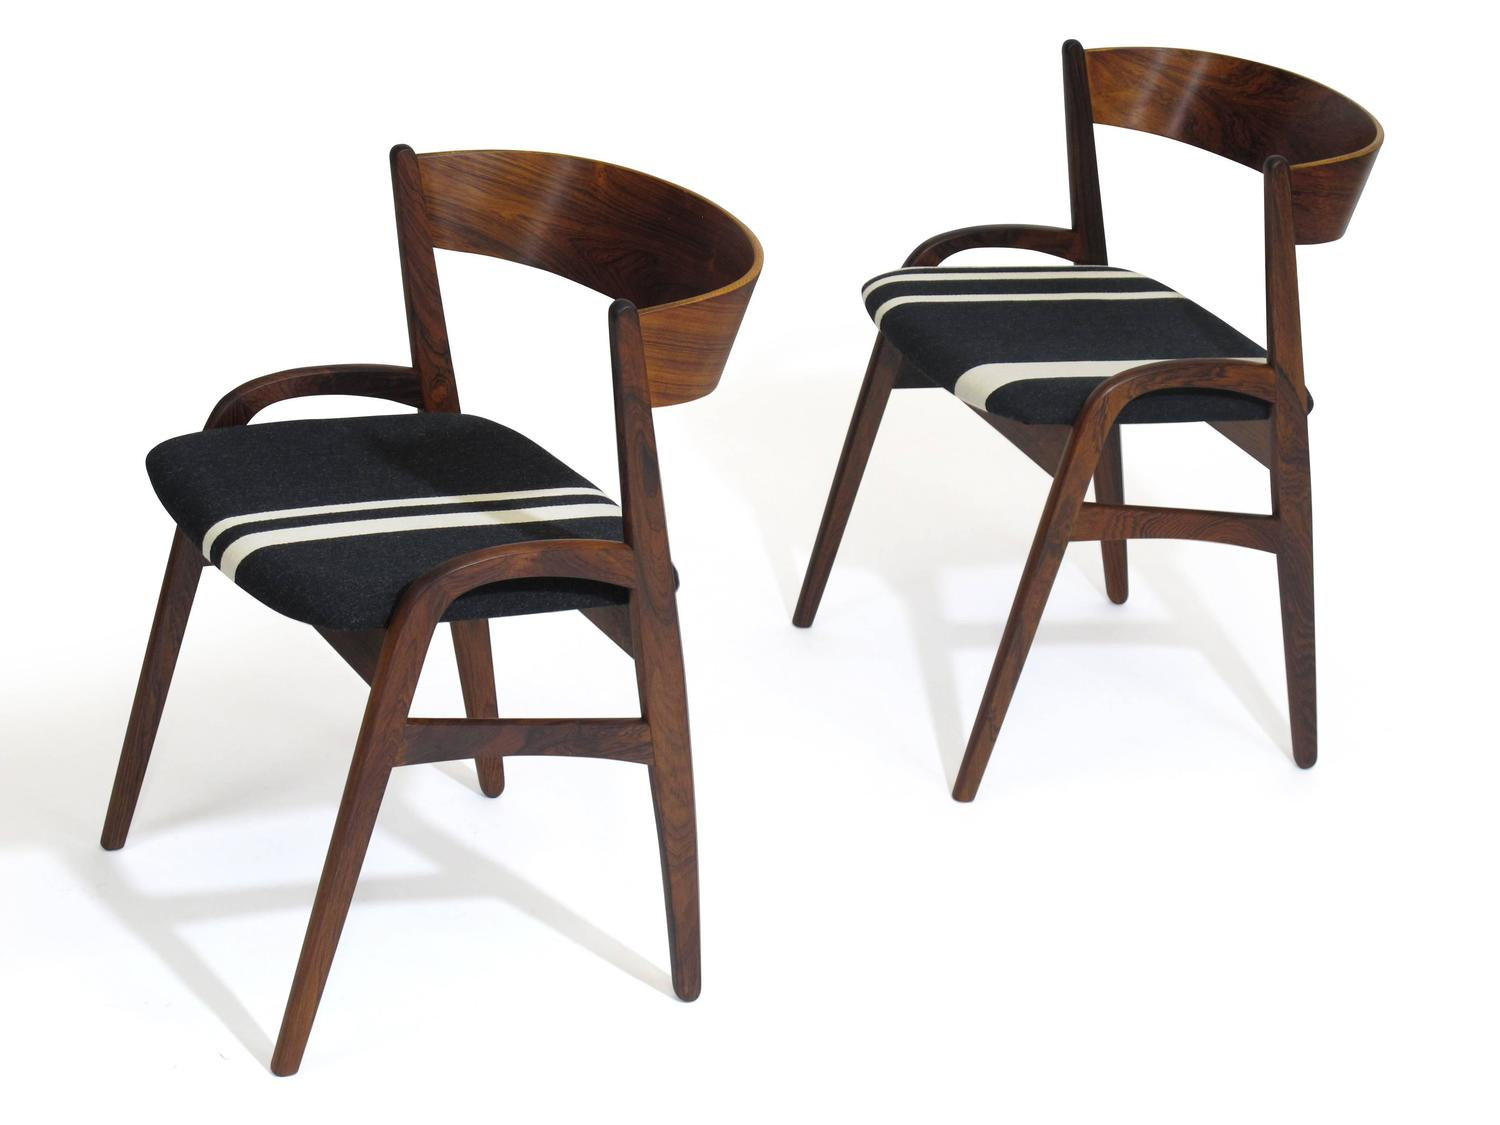 Six Rosewood Danish Dining Chairs In Black White Striped Fabric At 1stdibs